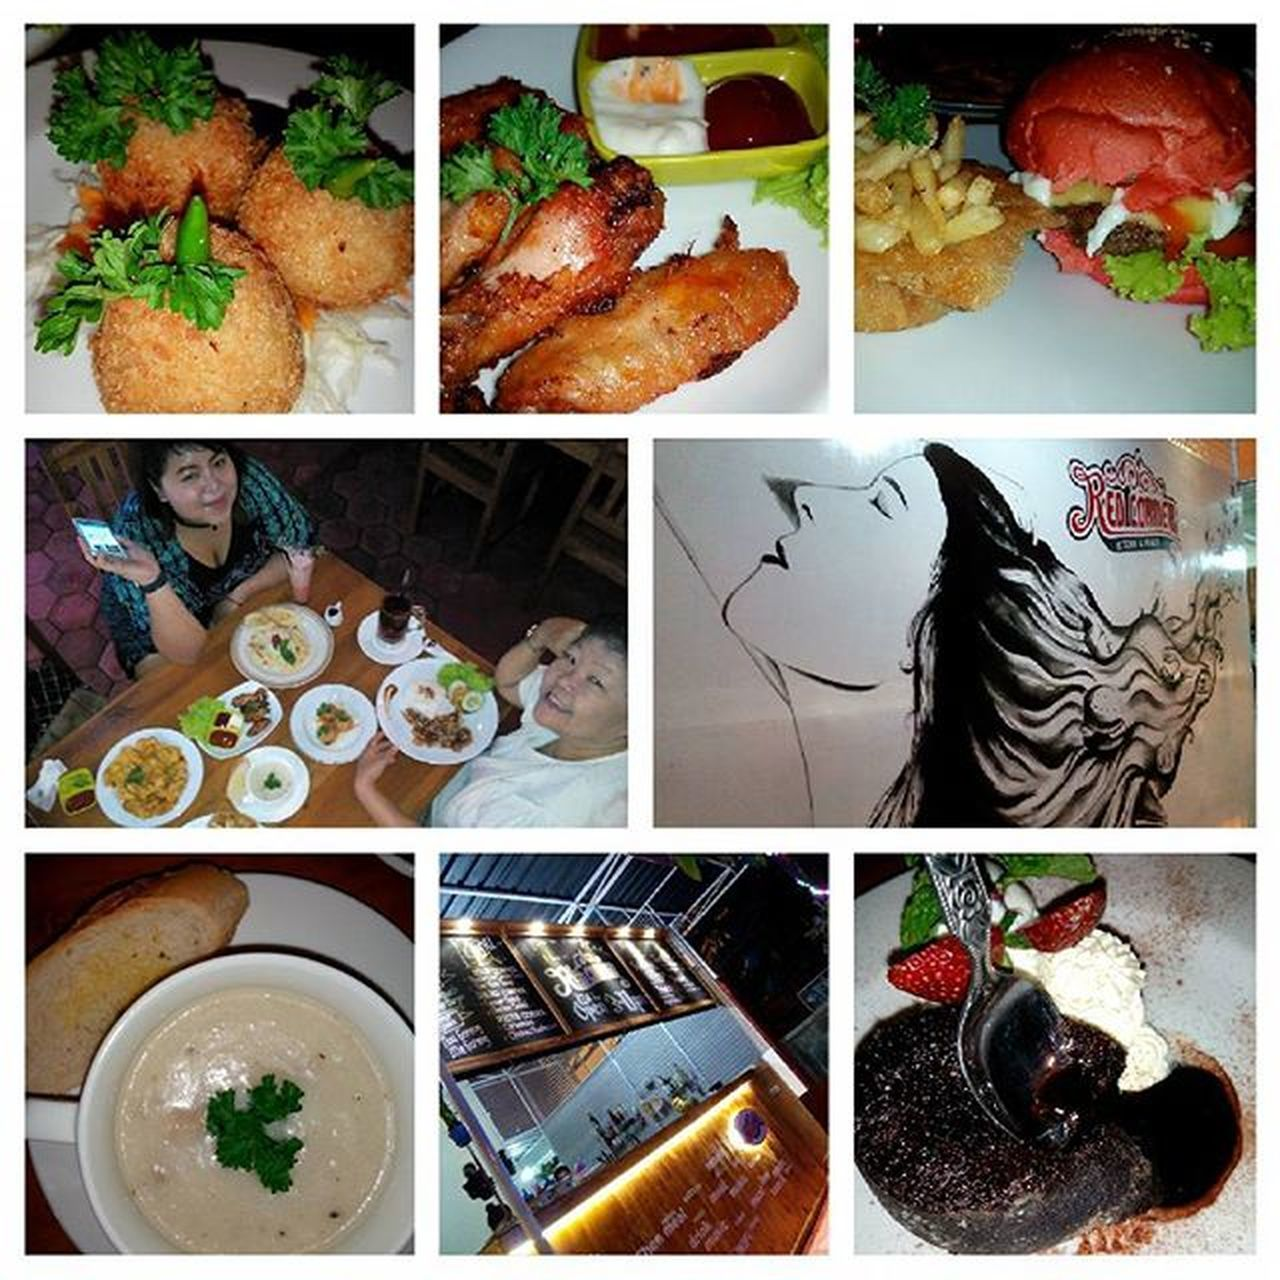 At Red Corner Kitchen, Jl. Lowanu no. 63, Yogyakarta Dinner and cheating day wif mom and dedek @dewadeww Red corner burger special wif mozzarella cheese 23K Spaghetti carbonara 25K Chicken katsu 17K Asparagus cream soup 13K Chicken wings 15K Chicken cheese ball 12K Bakwan jagung 12K Hot tea 4K Wedang uwuh 10K Strawberry Lassy 12K *The dessert is Lava cake wif homemade whipped cream and vanila ice cream FREE! Soft opening 1-7 December get 20% discount, yaaaayyy!! Bon appetite! Cafe Redcornerkitchen Redburger Culinary Western Food Foodie Foodphotography Foodporn Instafood Foodseeker Foodhunger Foodhunter Bonappetit Eatclean Eatwelltraveloften Enjoyinglife  Enjoy Eattogether Sisterhood FamilyTime Qualitytime Capturedbymyoppoyoyo DECEMBER2015